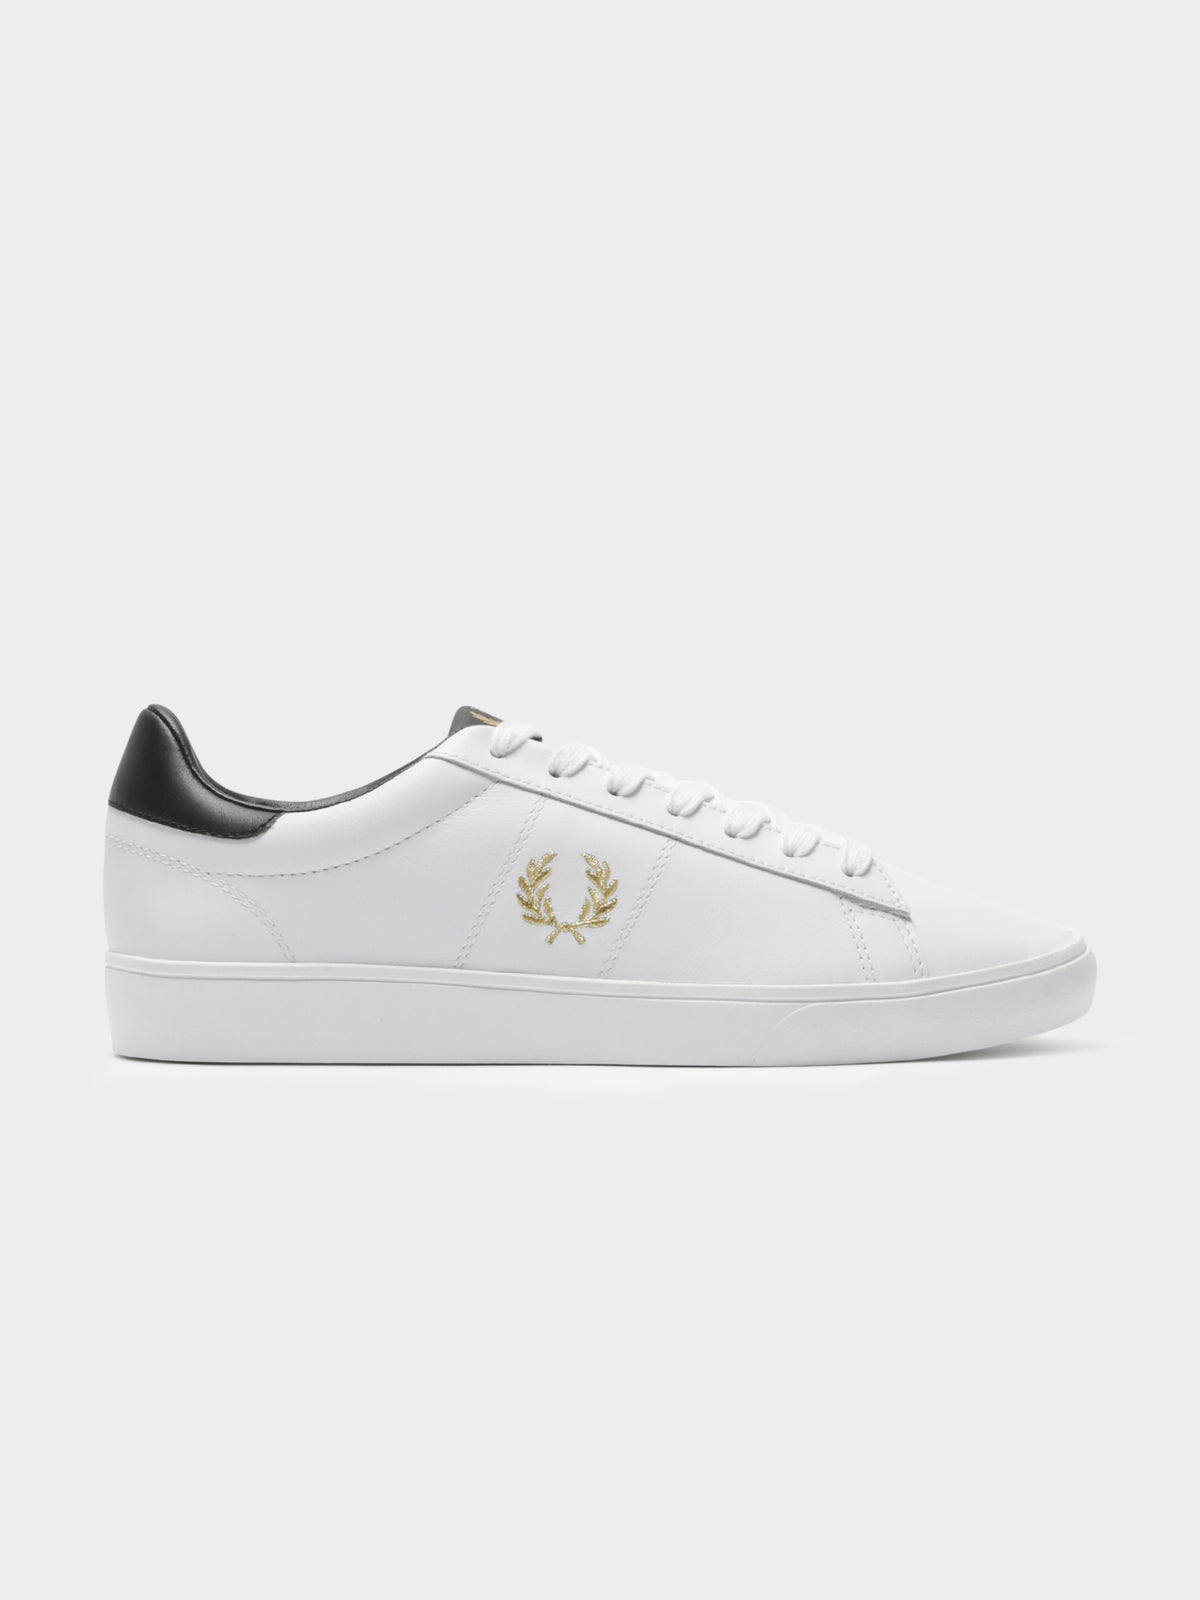 Mens Spencer Leather Sneakers in White & Gold